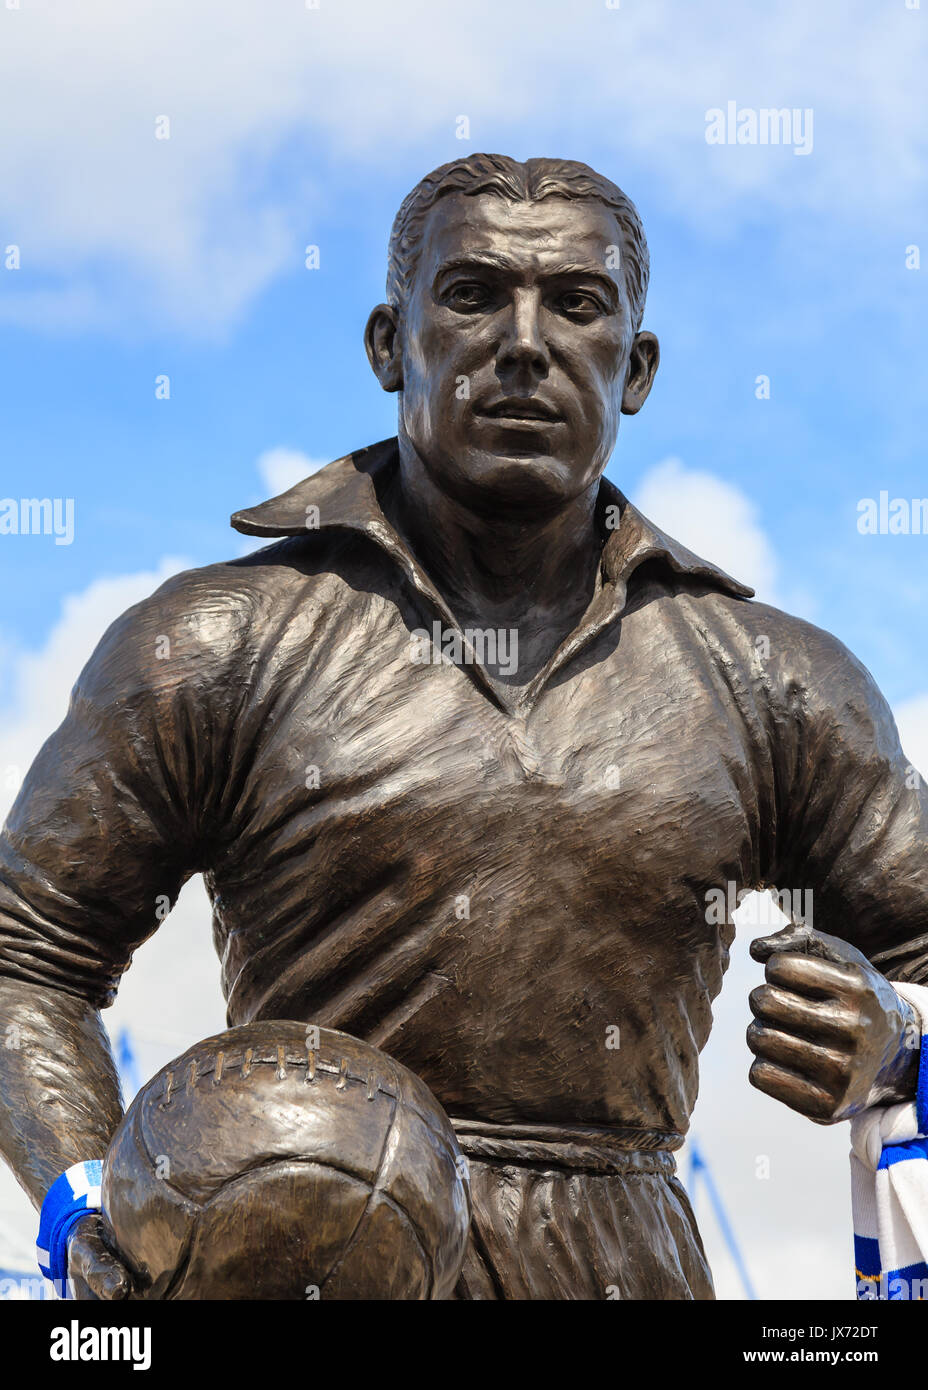 A statue of Dixie Dean footballer and goalscorer outside Goodison